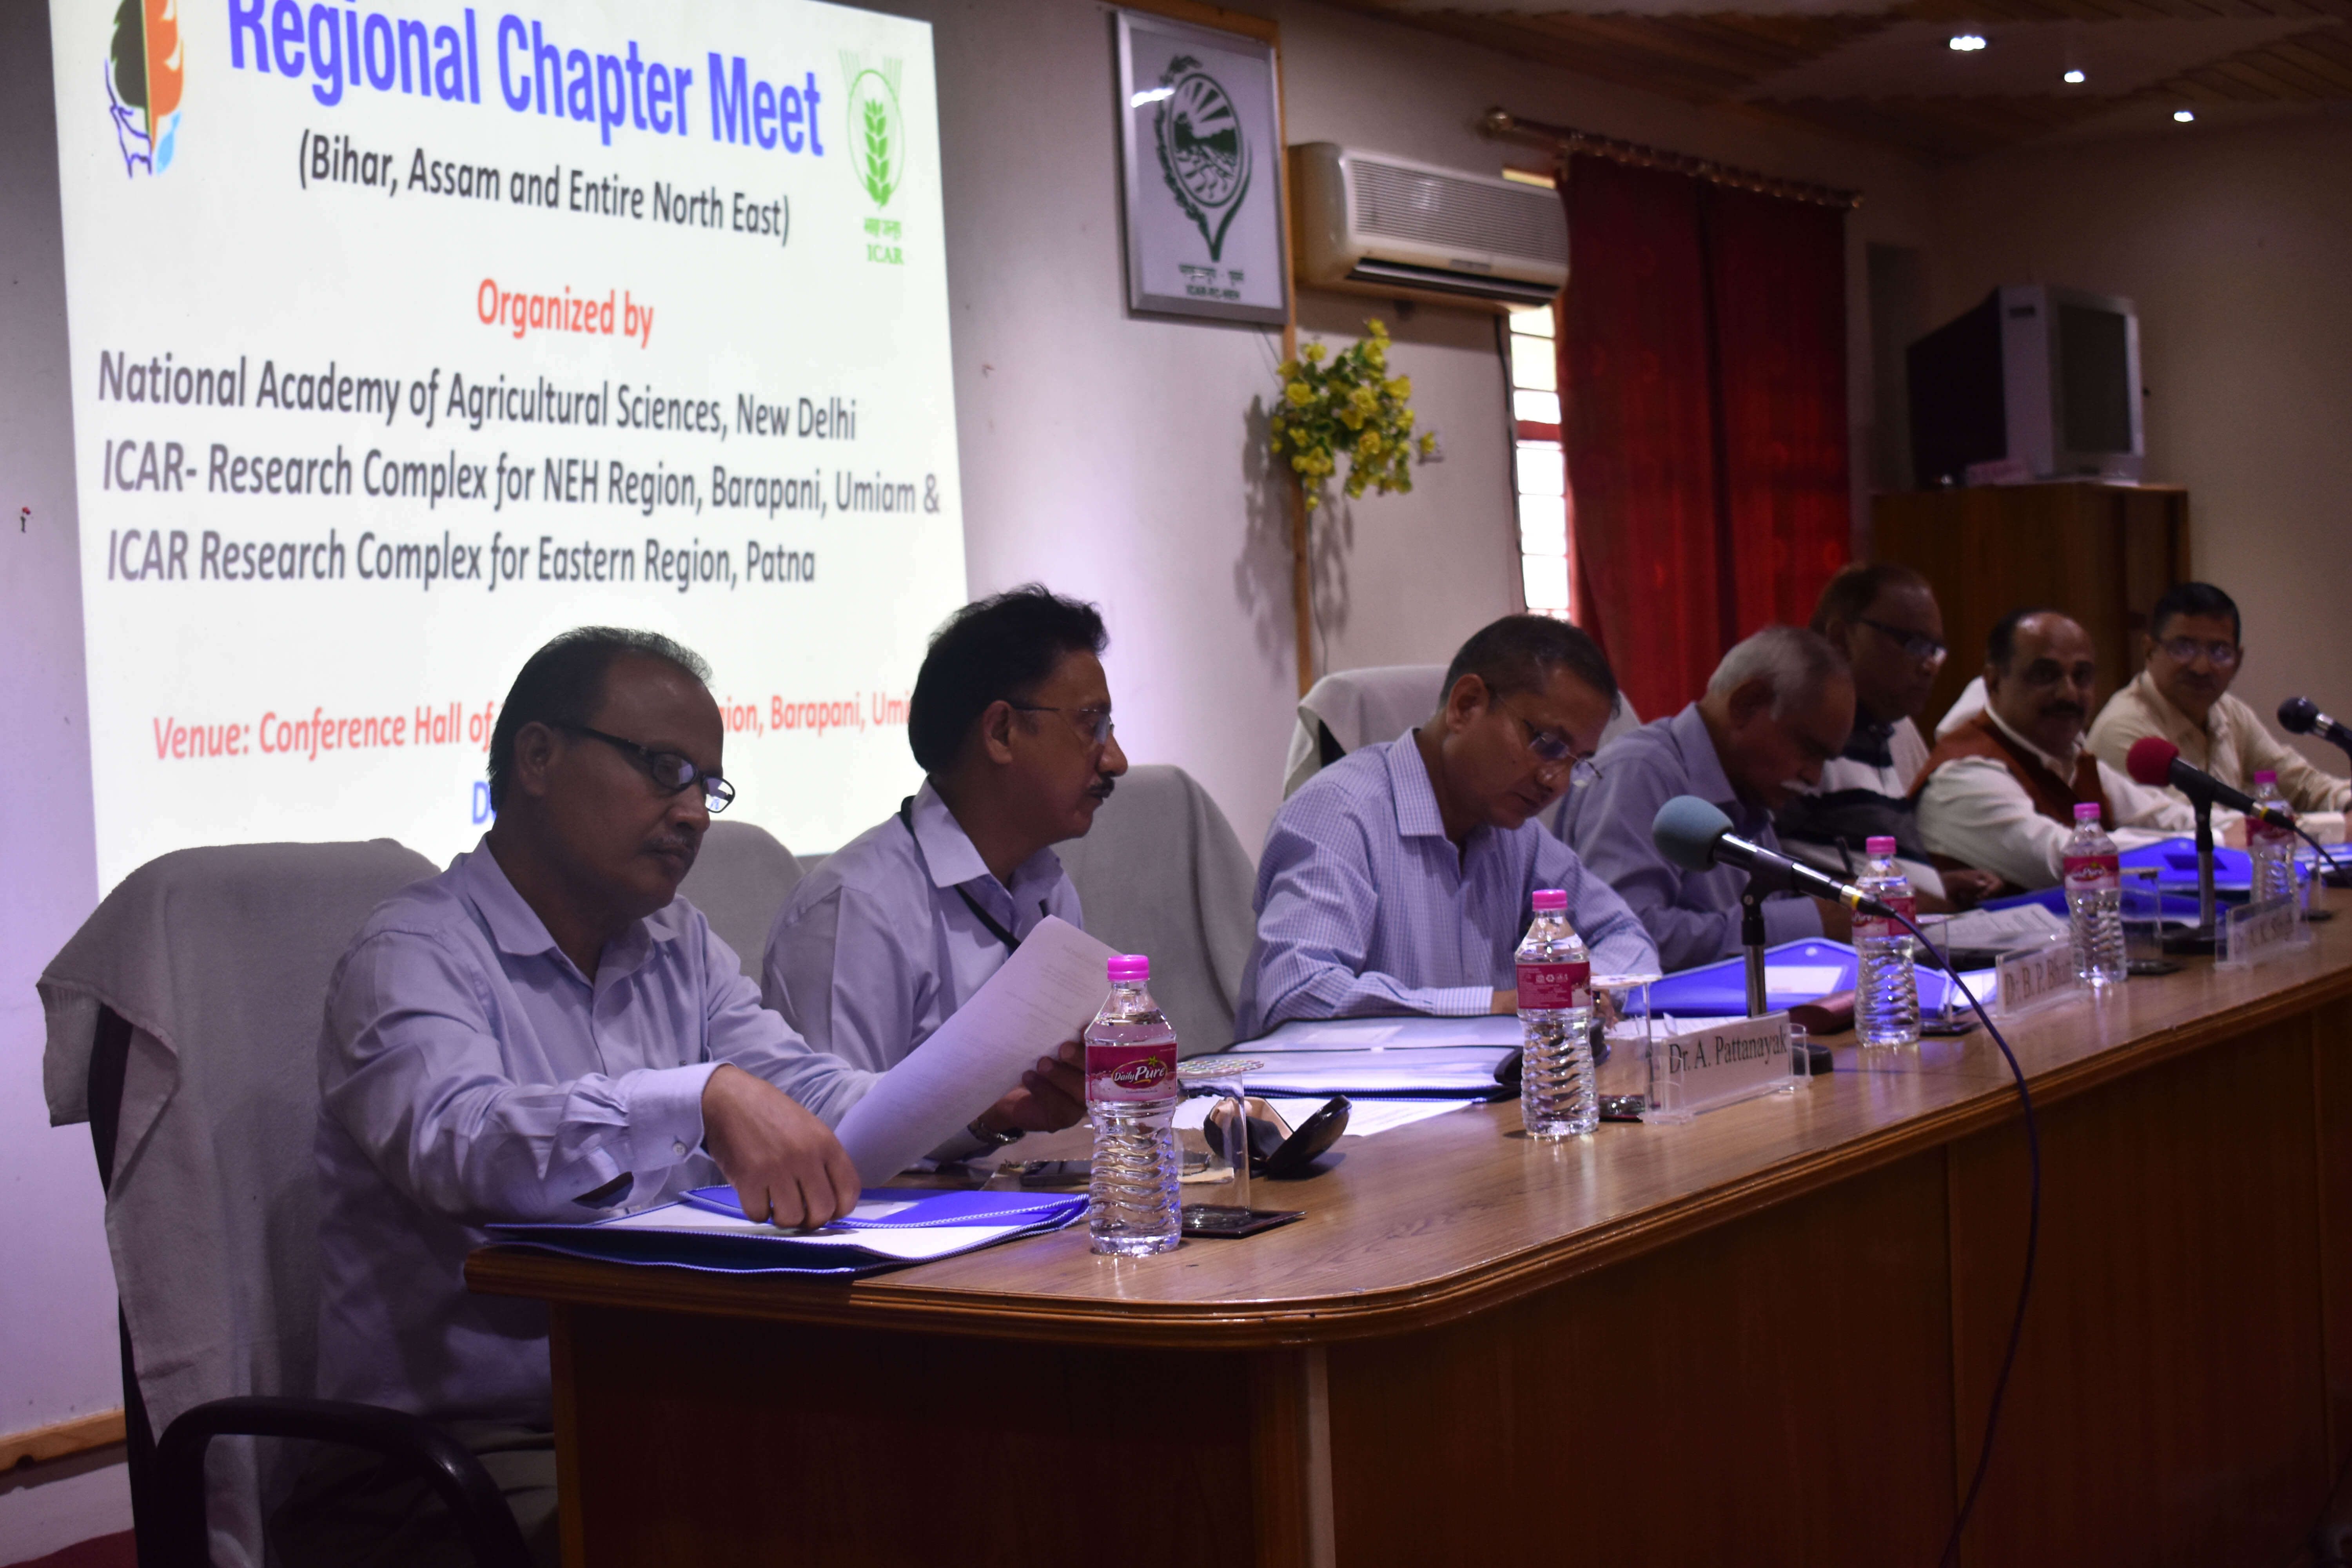 National Academy of Agricultural Sciences (NAAS) meet on agricultural growth held